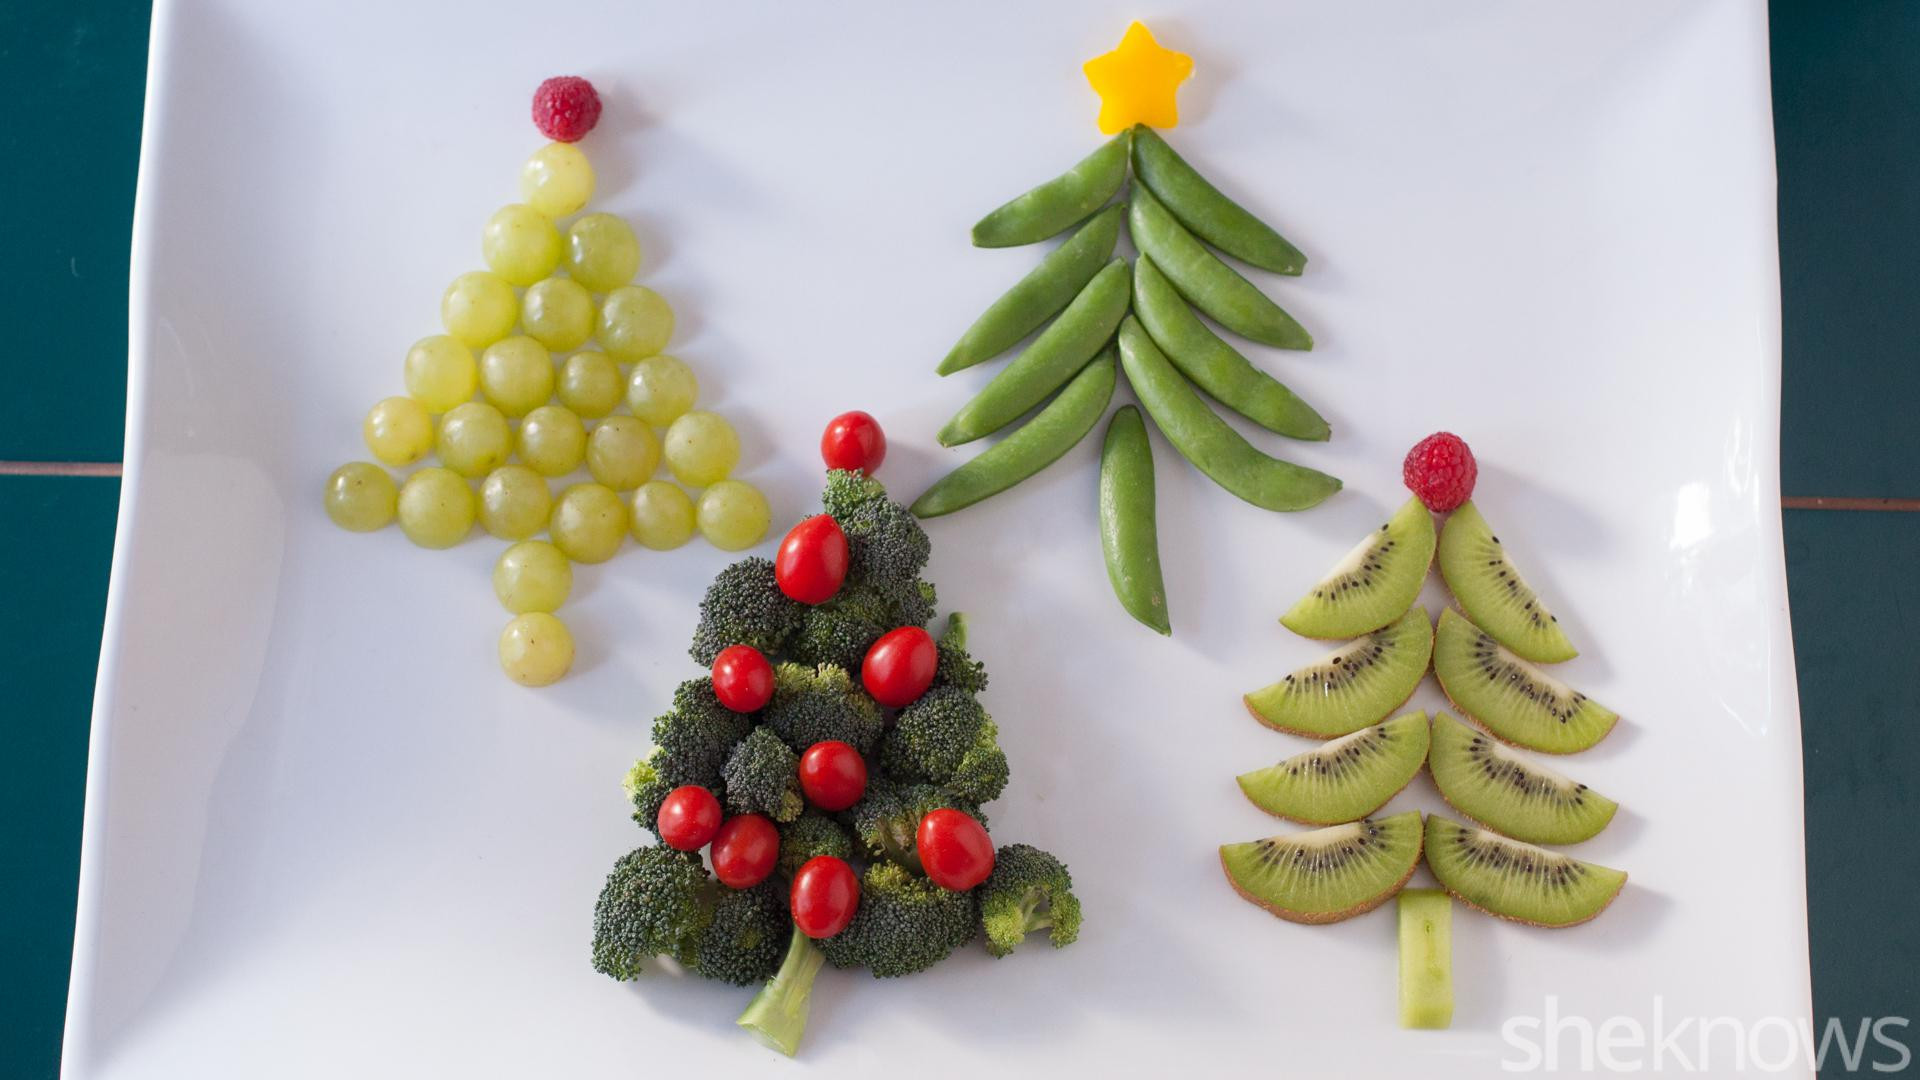 Healthy Christmas Snacks For Kids  4 Kid friendly Christmas snacks that moms will love too